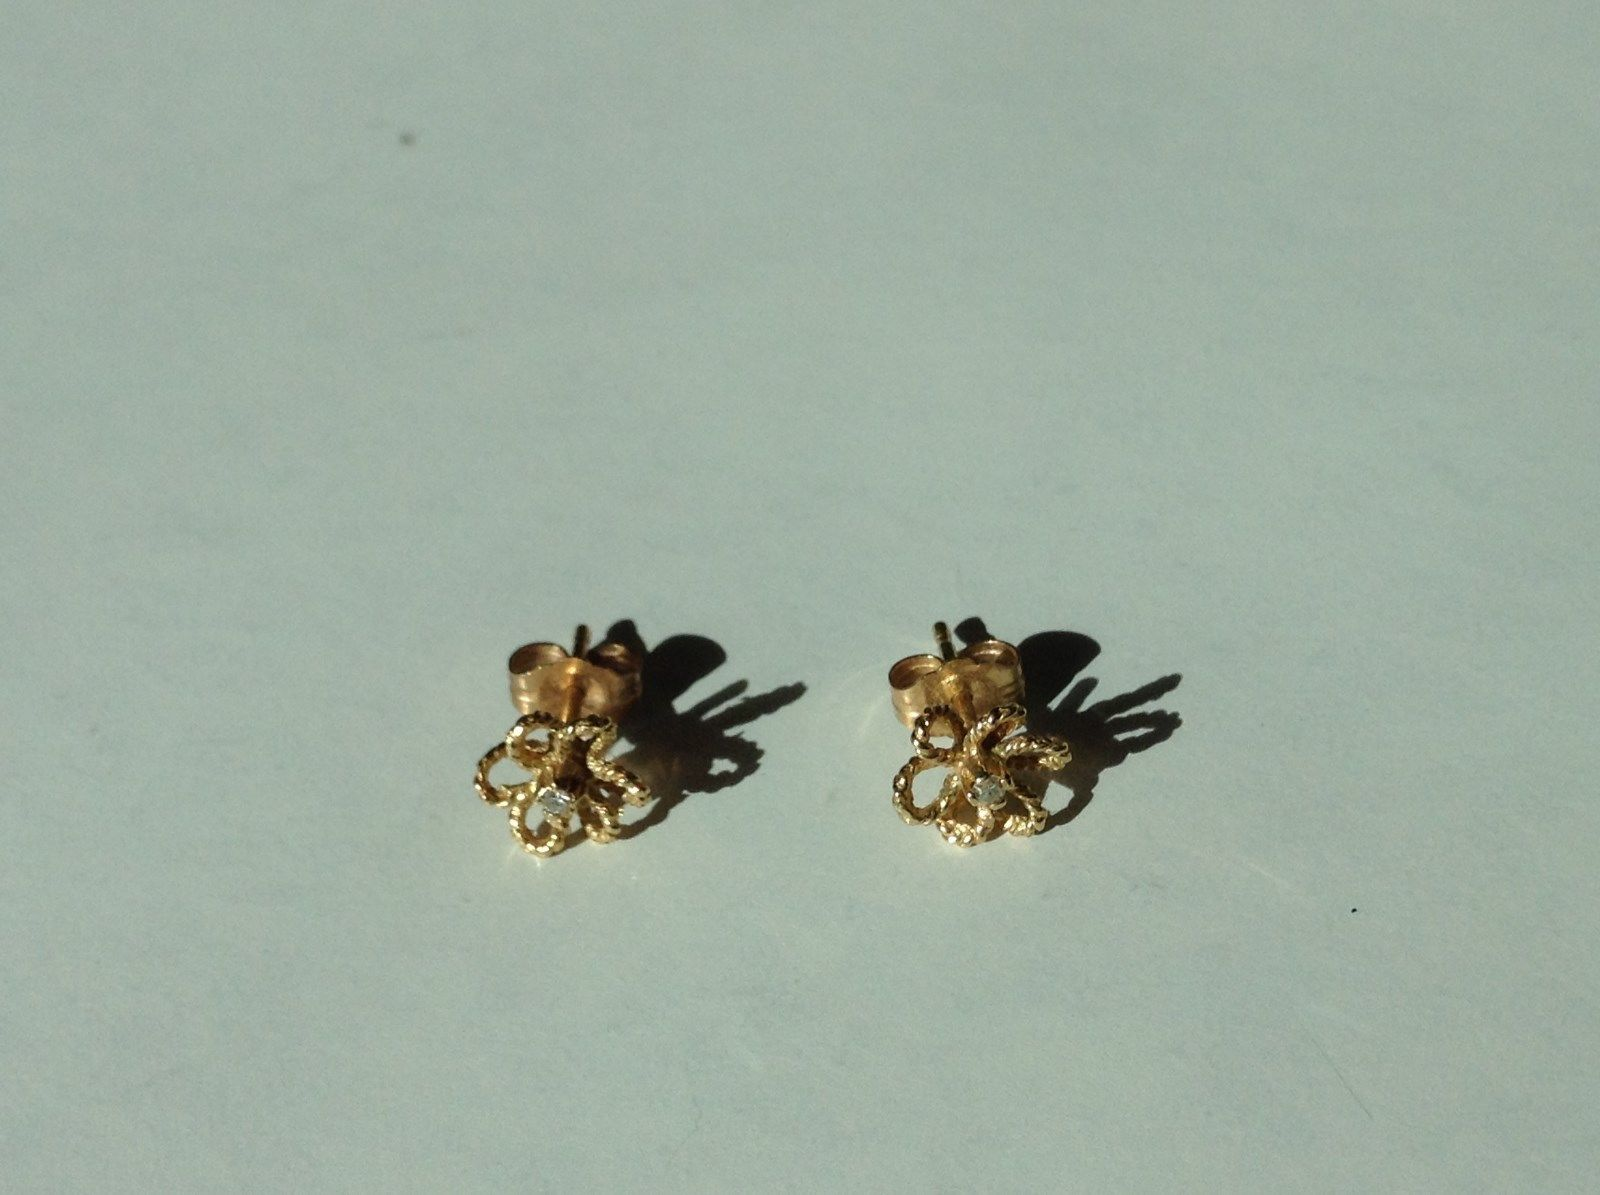 Gold Tone Tiny Study Earrings Flower Pattern with Tiny Crystal